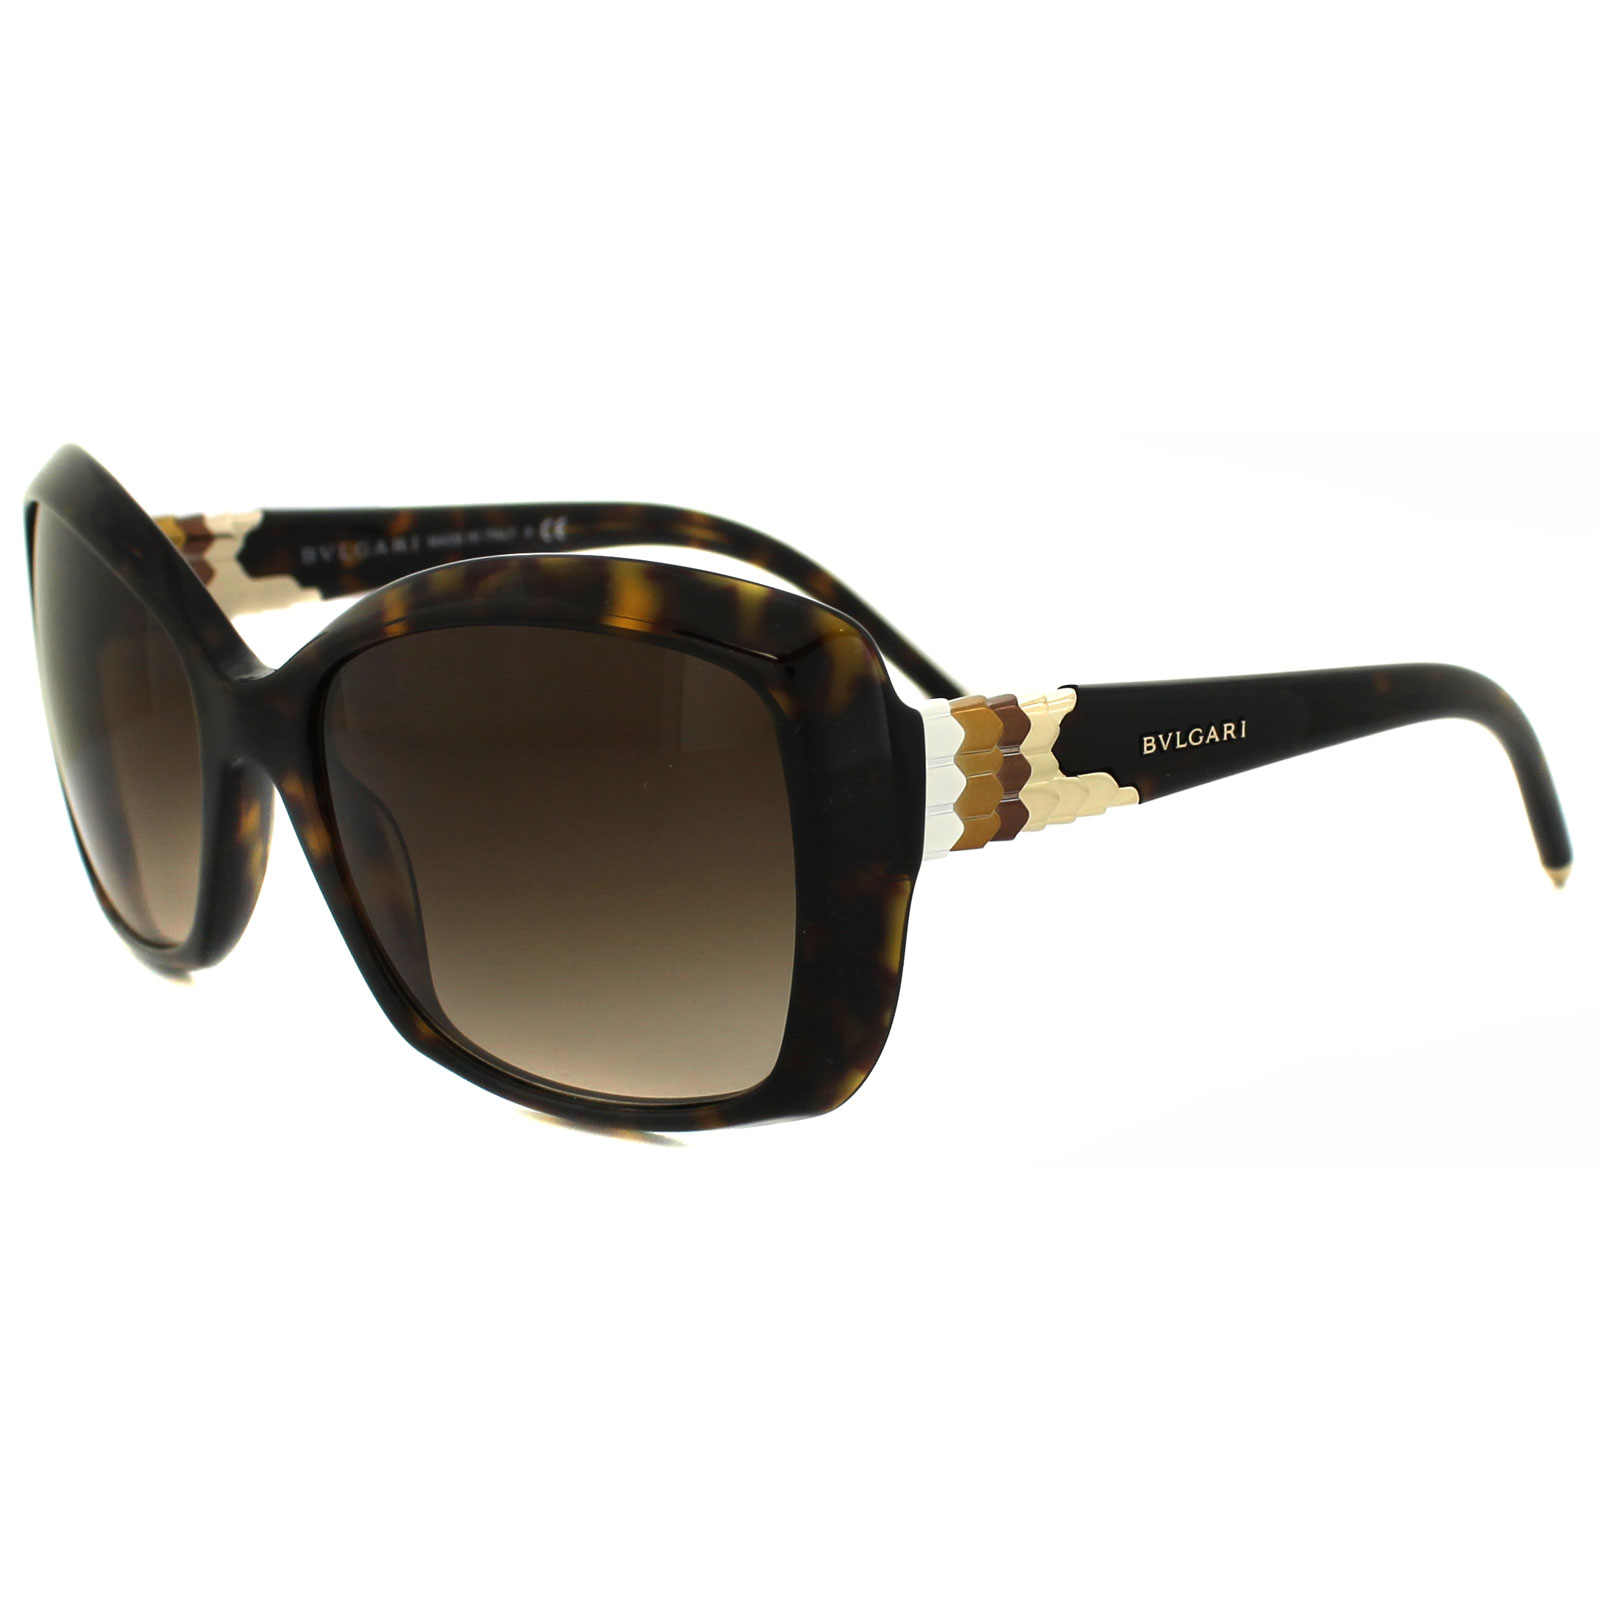 90ea708981c Bvlgari Sunglasses 8133 504 13 Havana Brown Gradient 8053672179064 ...